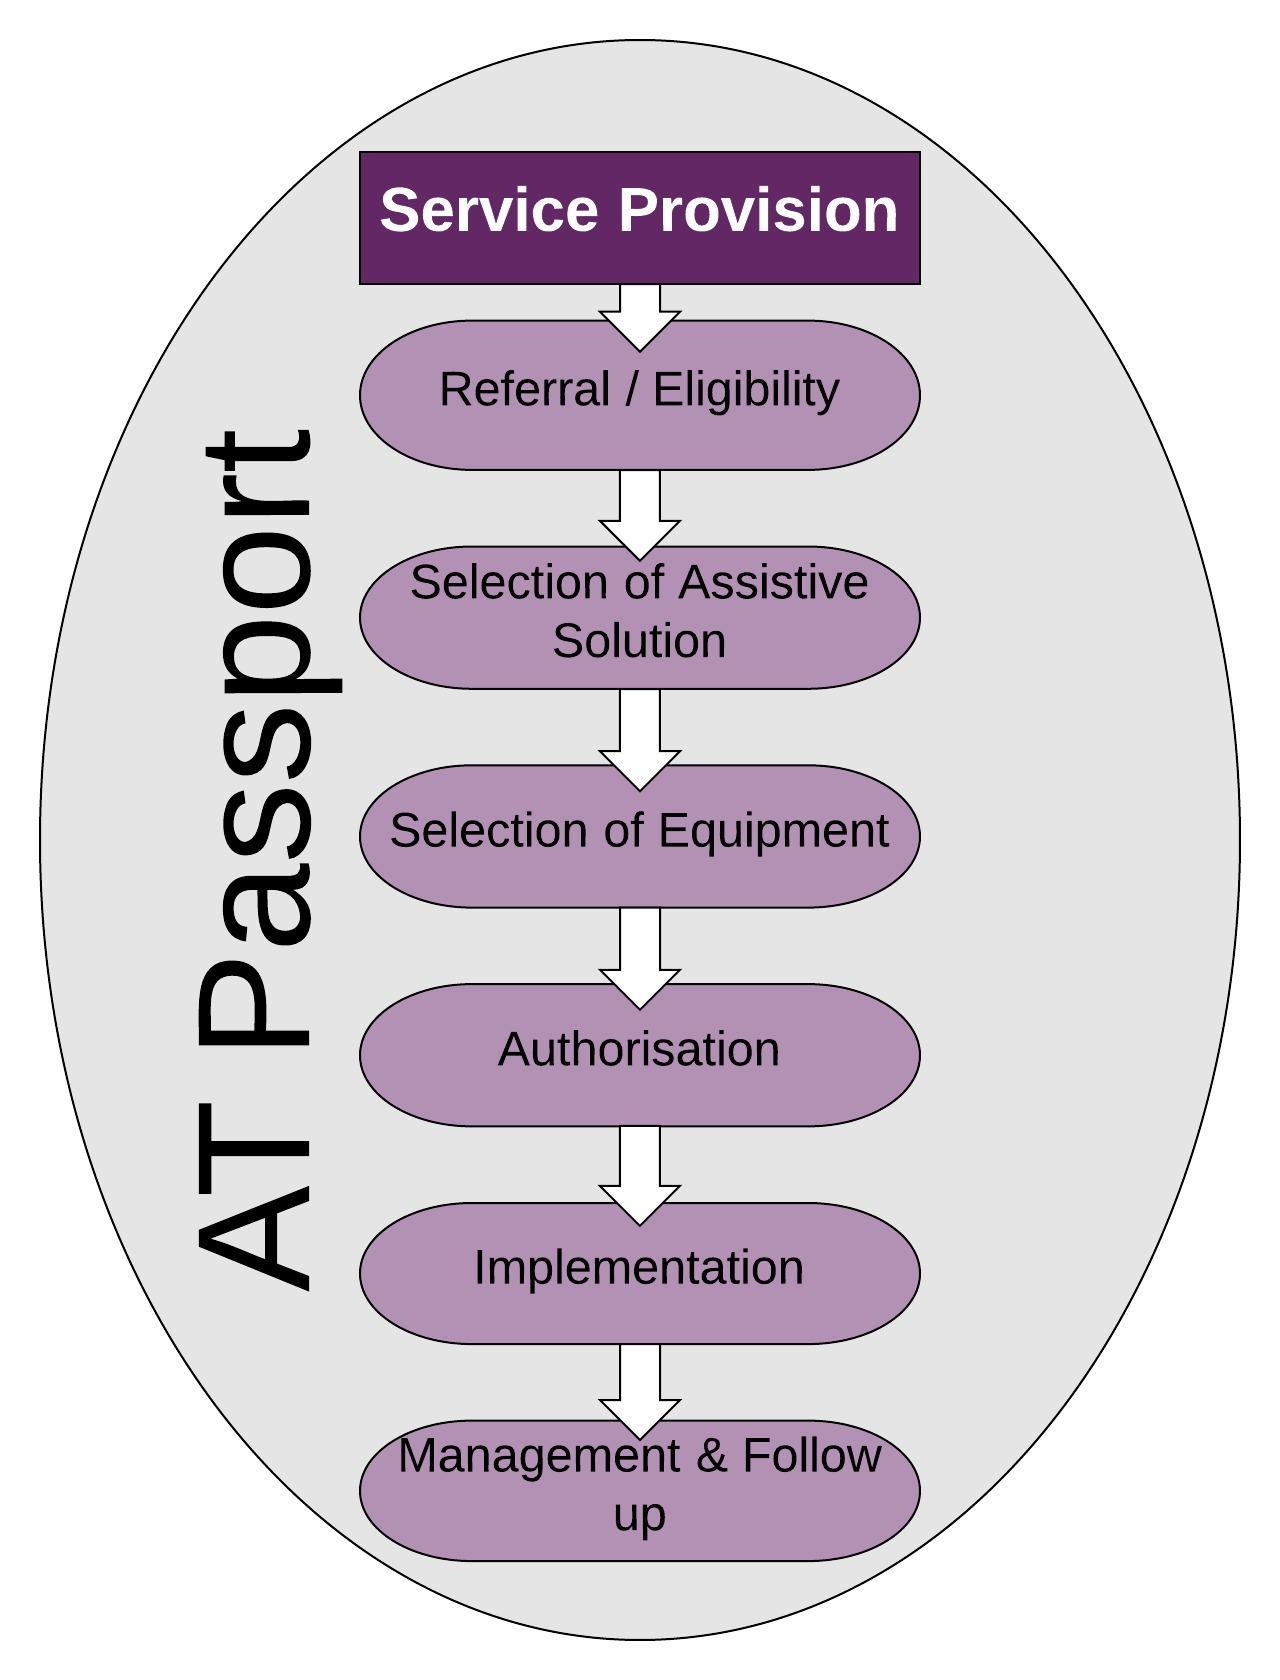 Vertical workflow diagram all contained within AT Passport container. Top to botton: Service Povision, referra/eligibility, Selection of Assistive Soltion, Selection of Equipment, Authorisation, Implementation, Management and Follow up